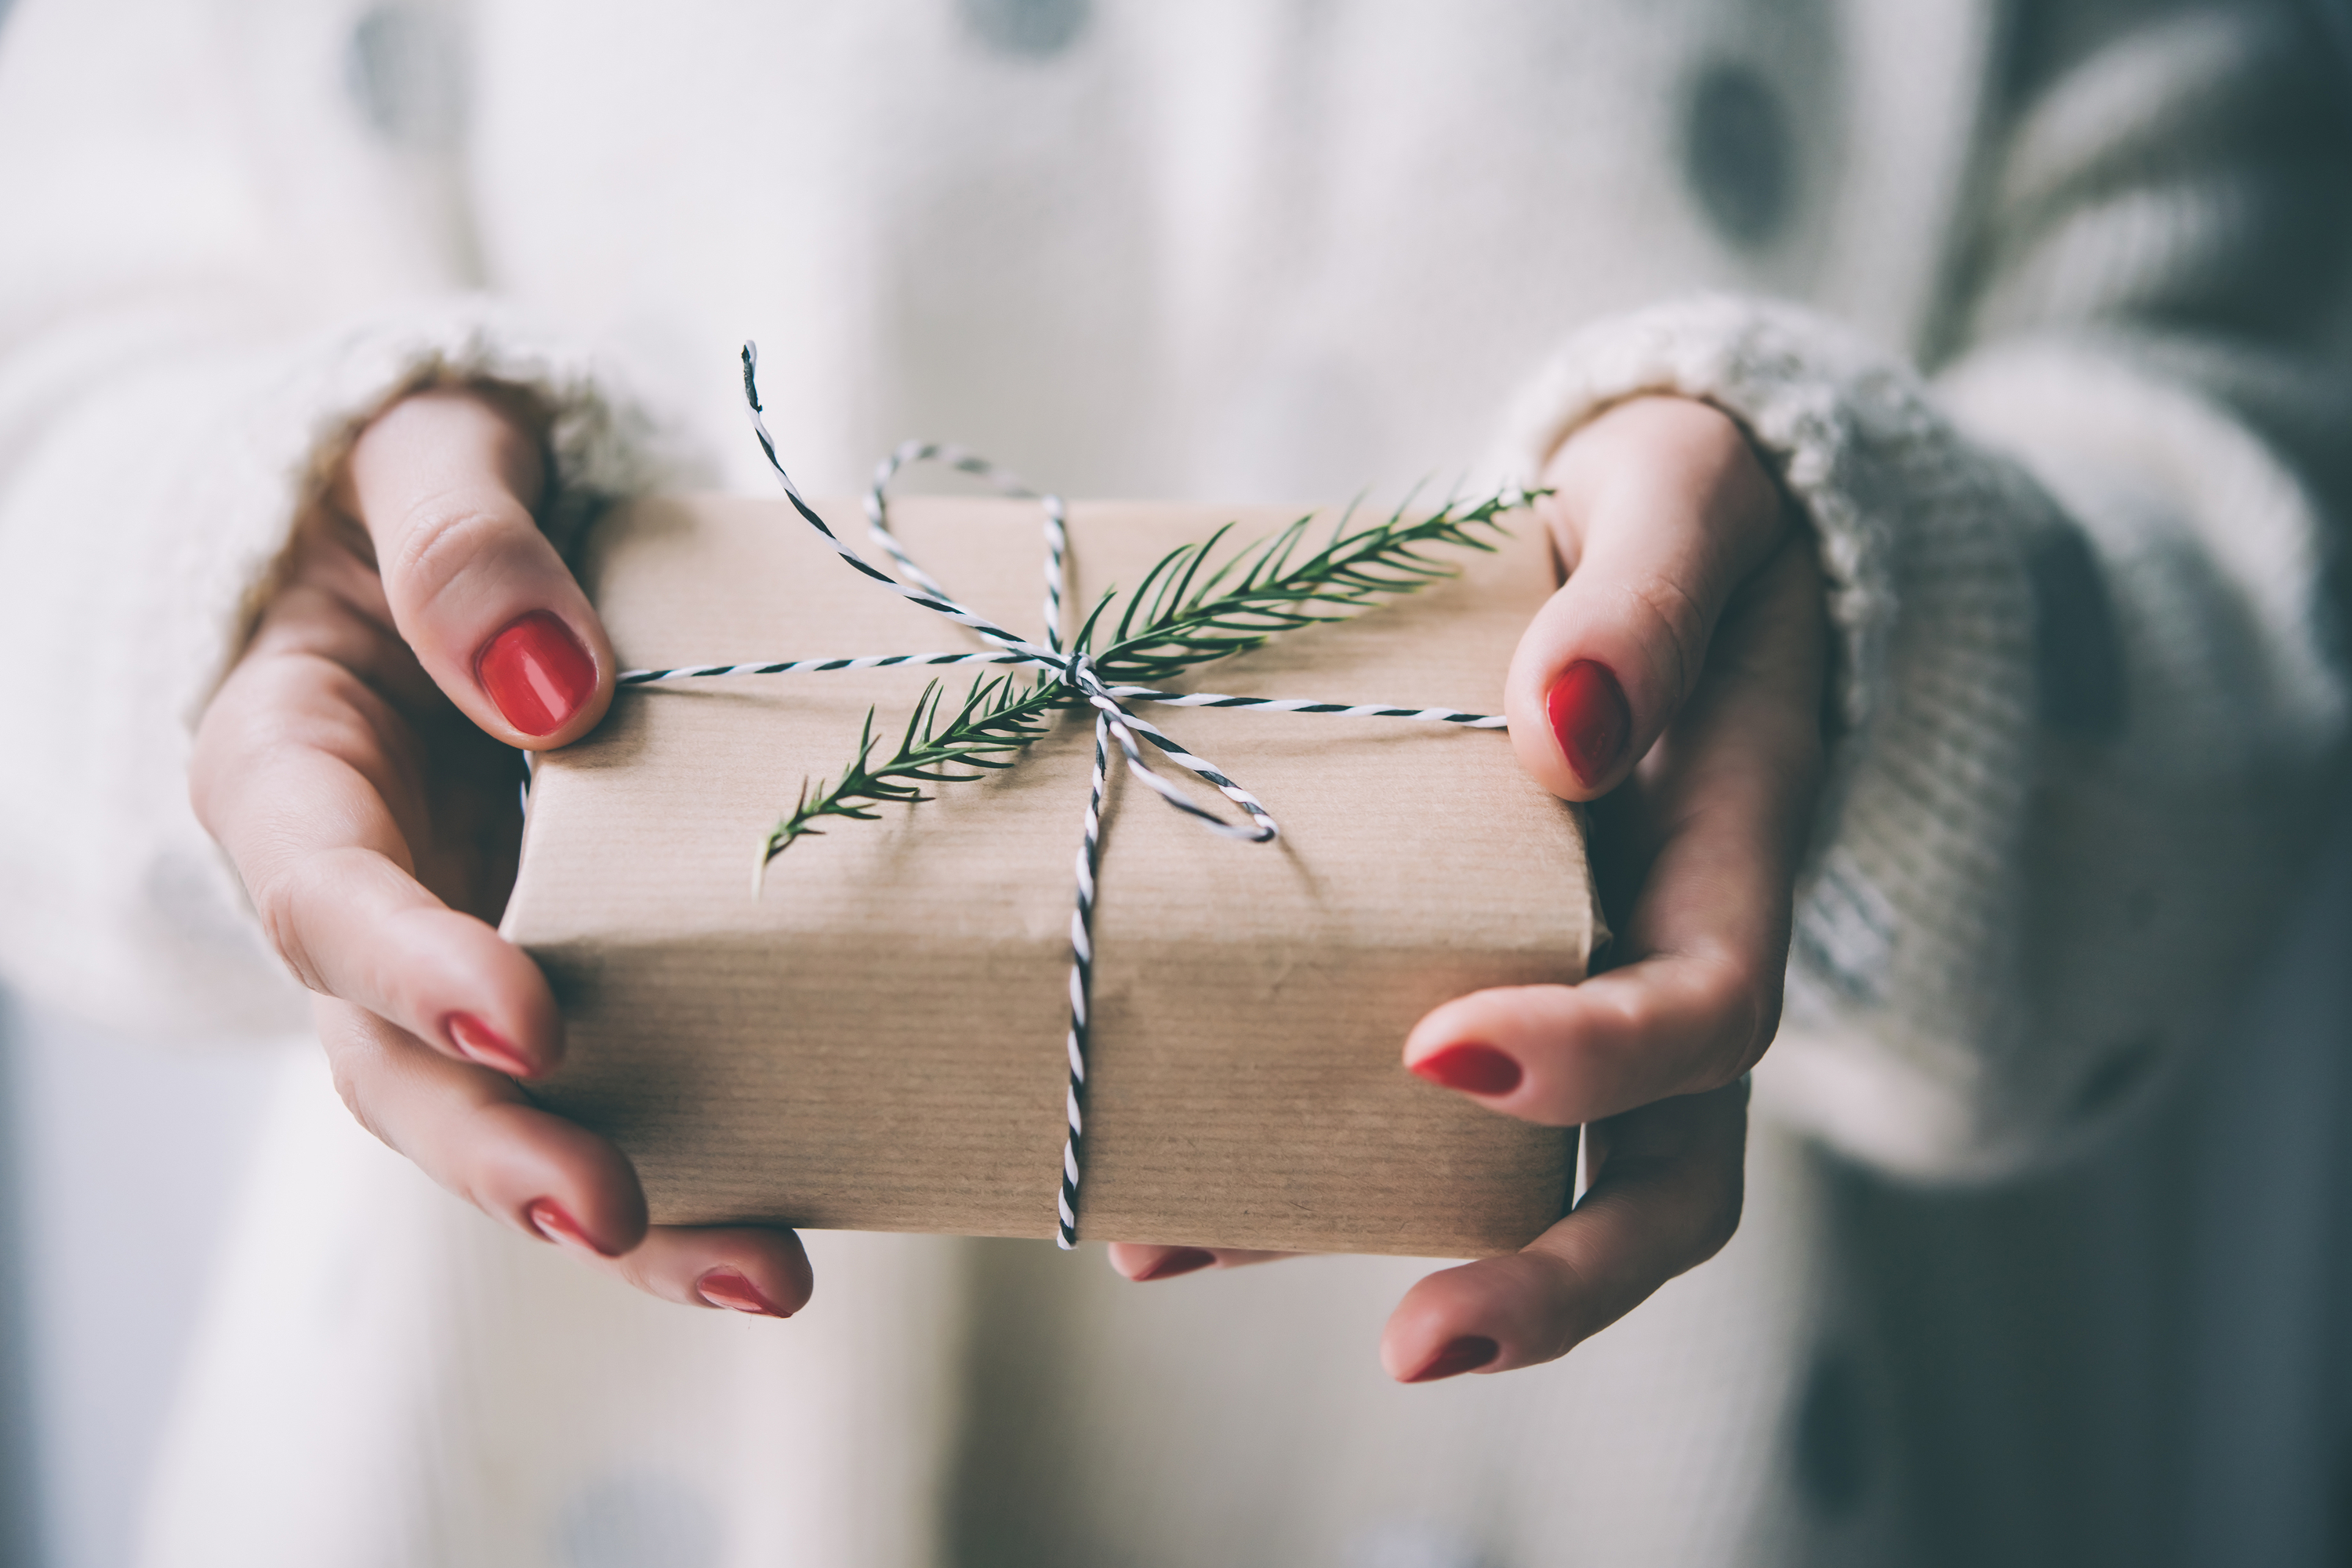 If you're struggling trying to come up with Christmas gift ideas for your loved ones, you're in luck! These Christmas gift ideas will be loved by everyone.